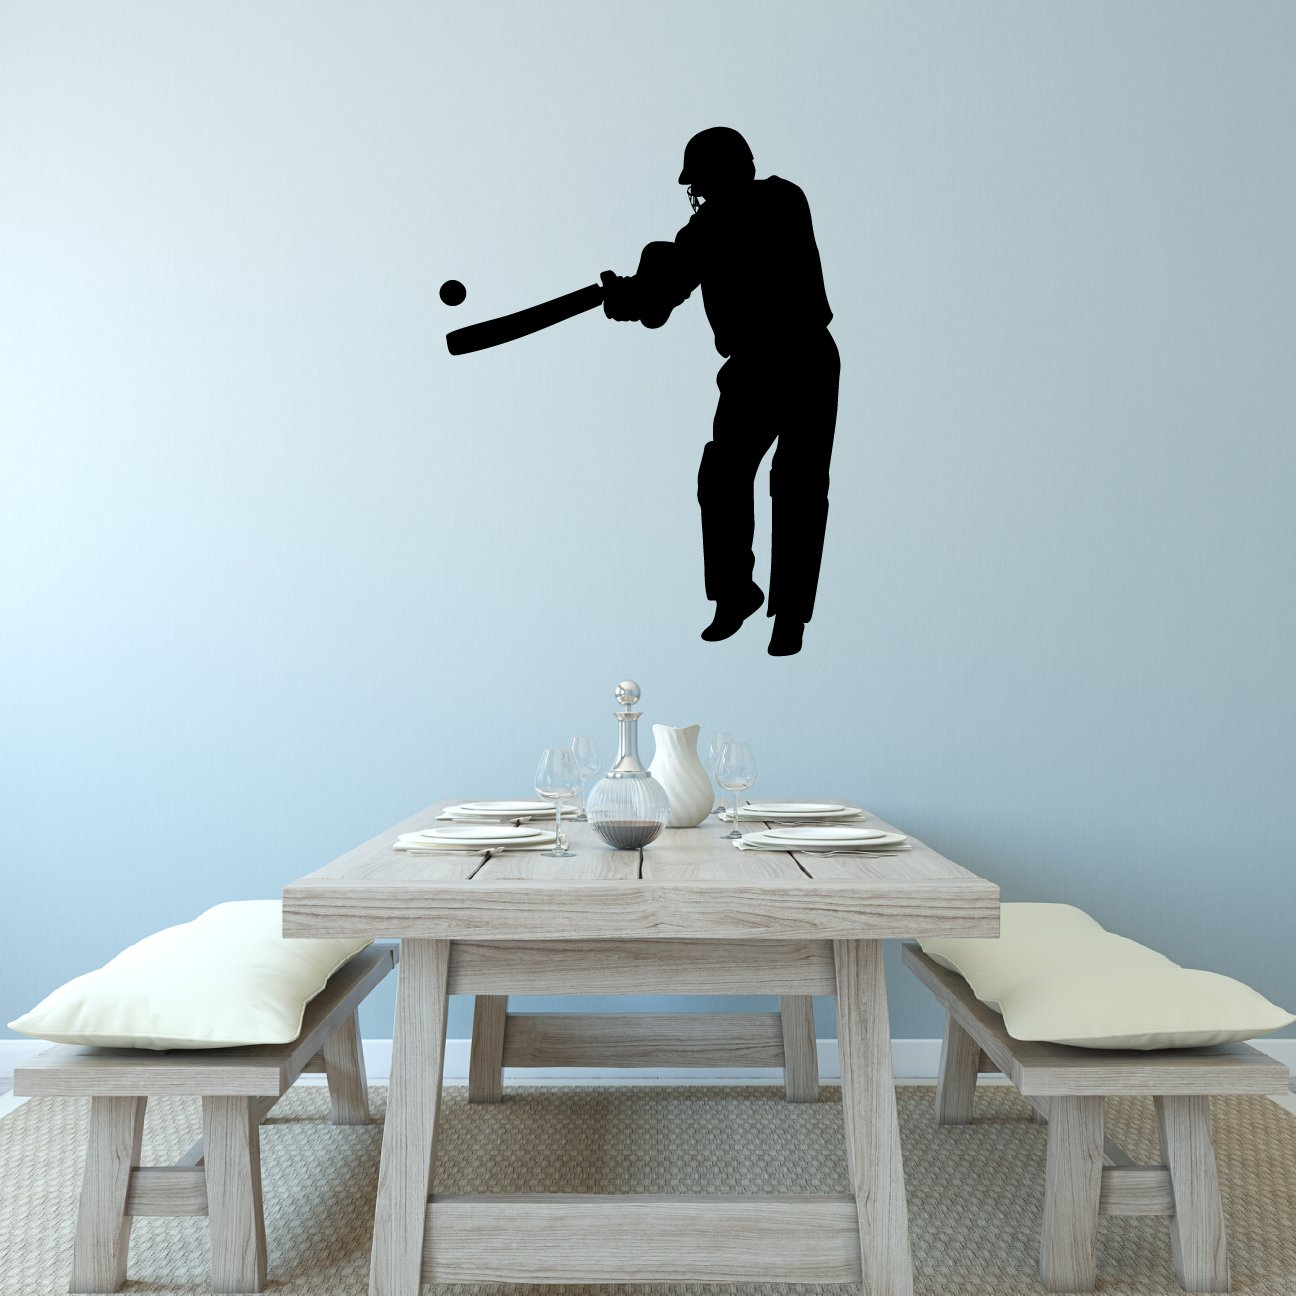 Decal Stickers and Mural for Kids Boys Girls Room and Bedroom Cricket Ball Sport India Wall Art for Home Decor and Decoration Cricket Silhouette Mural Cricket Wall Decal Sticker 11